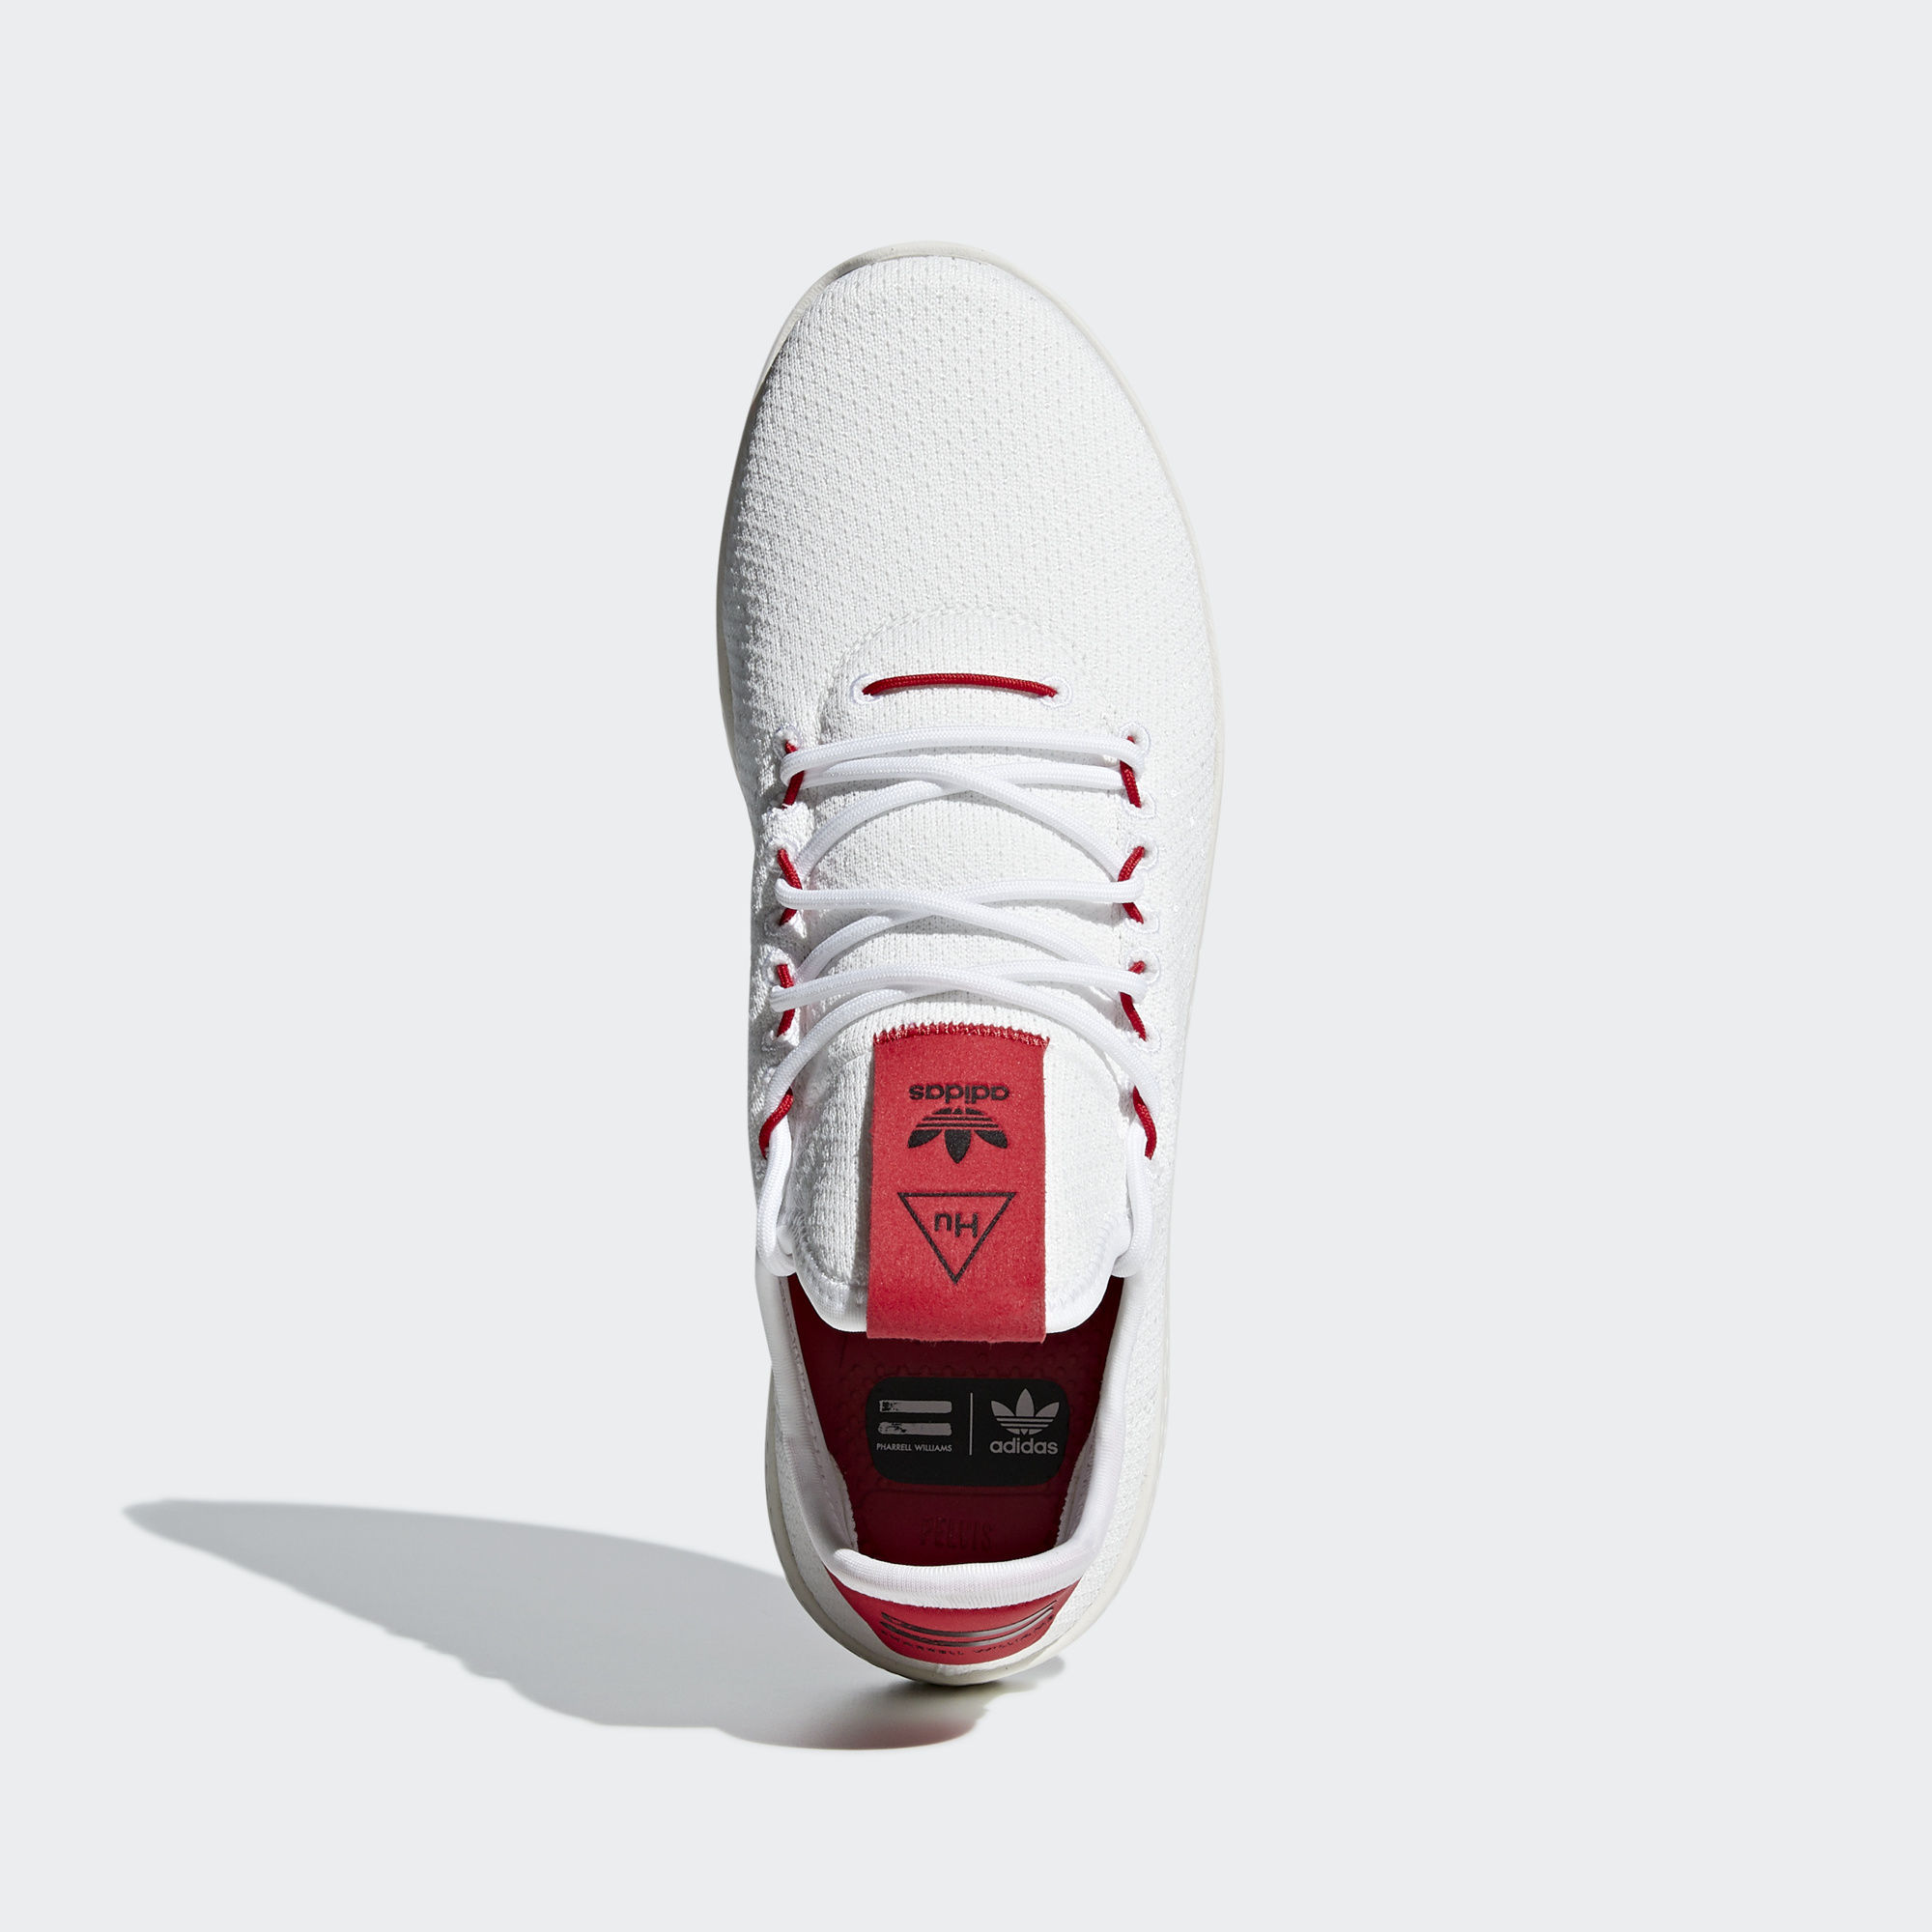 Pharrell Williams Tennis Hu Shoes Shoppa online  6c513765fc94e9e7077907733e8961cc    Avound    Pharrell Williams Tennis Hu Shoes   title=  6c513765fc94e9e7077907733e8961cc    Shoppa online  6c513765fc94e9e7077907733e8961cc     Afound